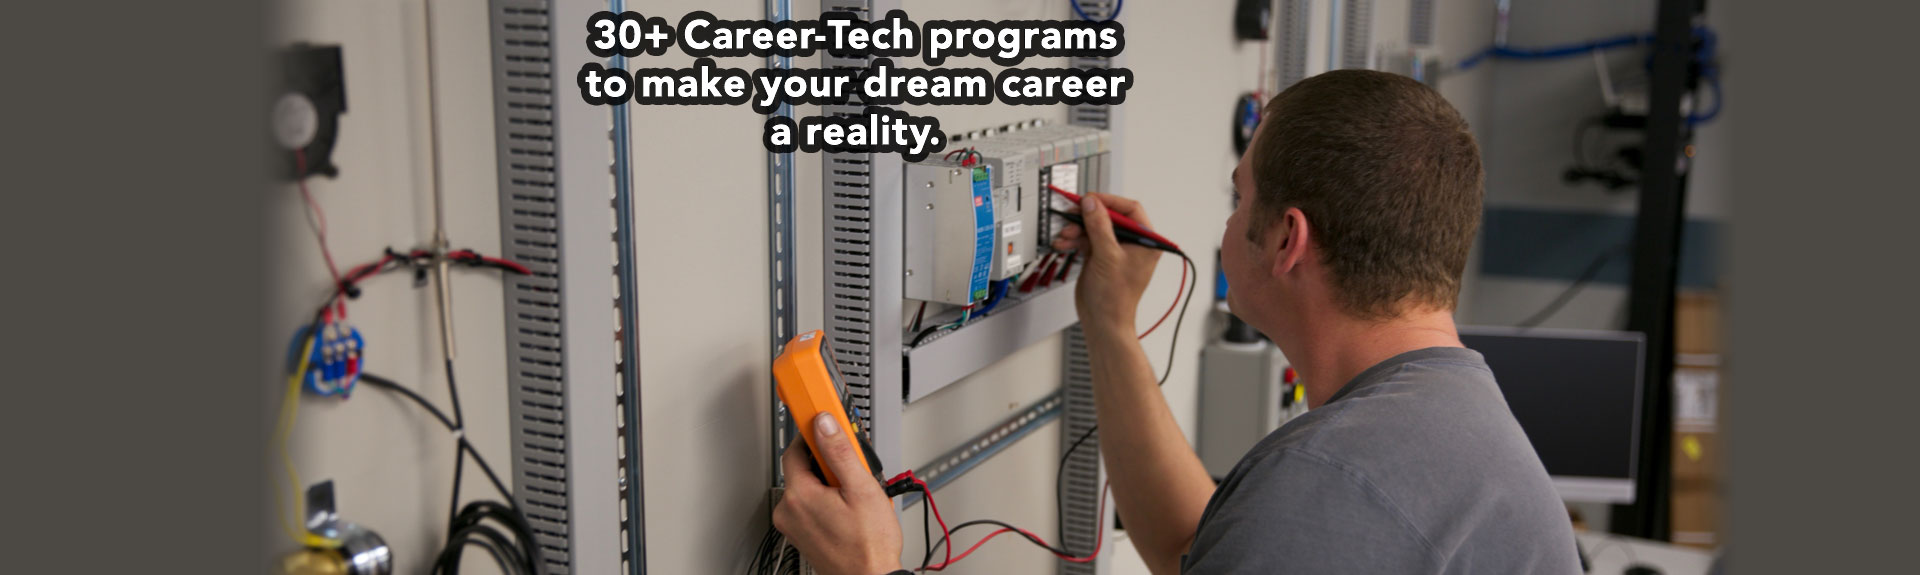 Career-Tech